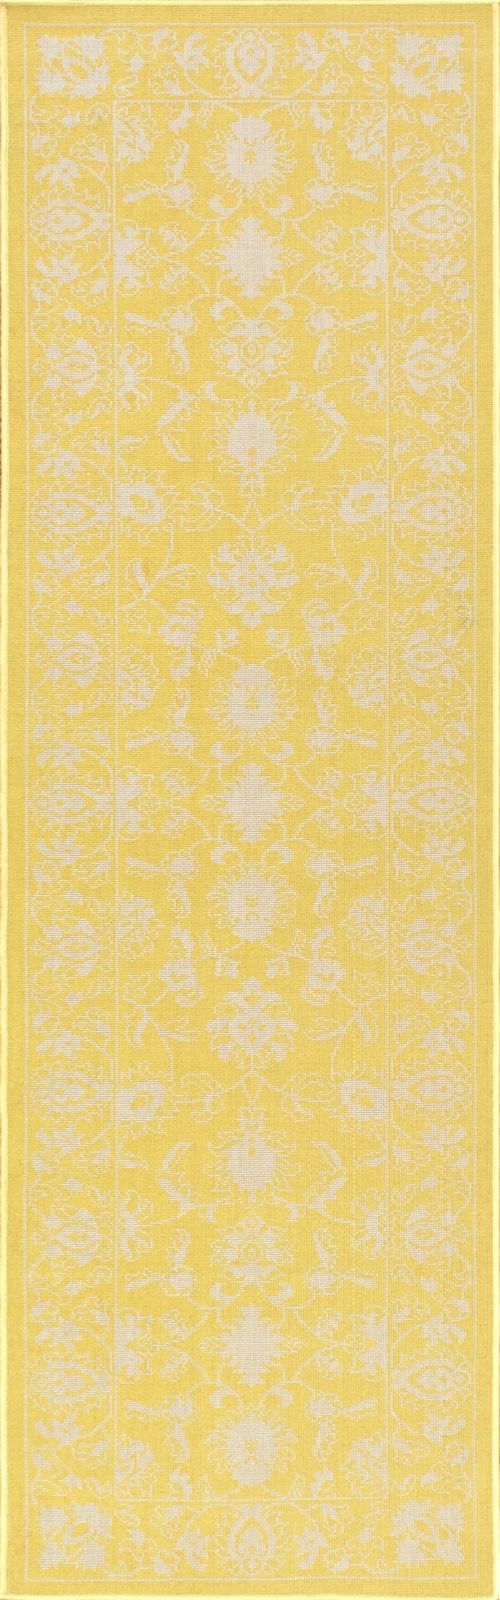 nuloom pridgen country & floral area rug collection